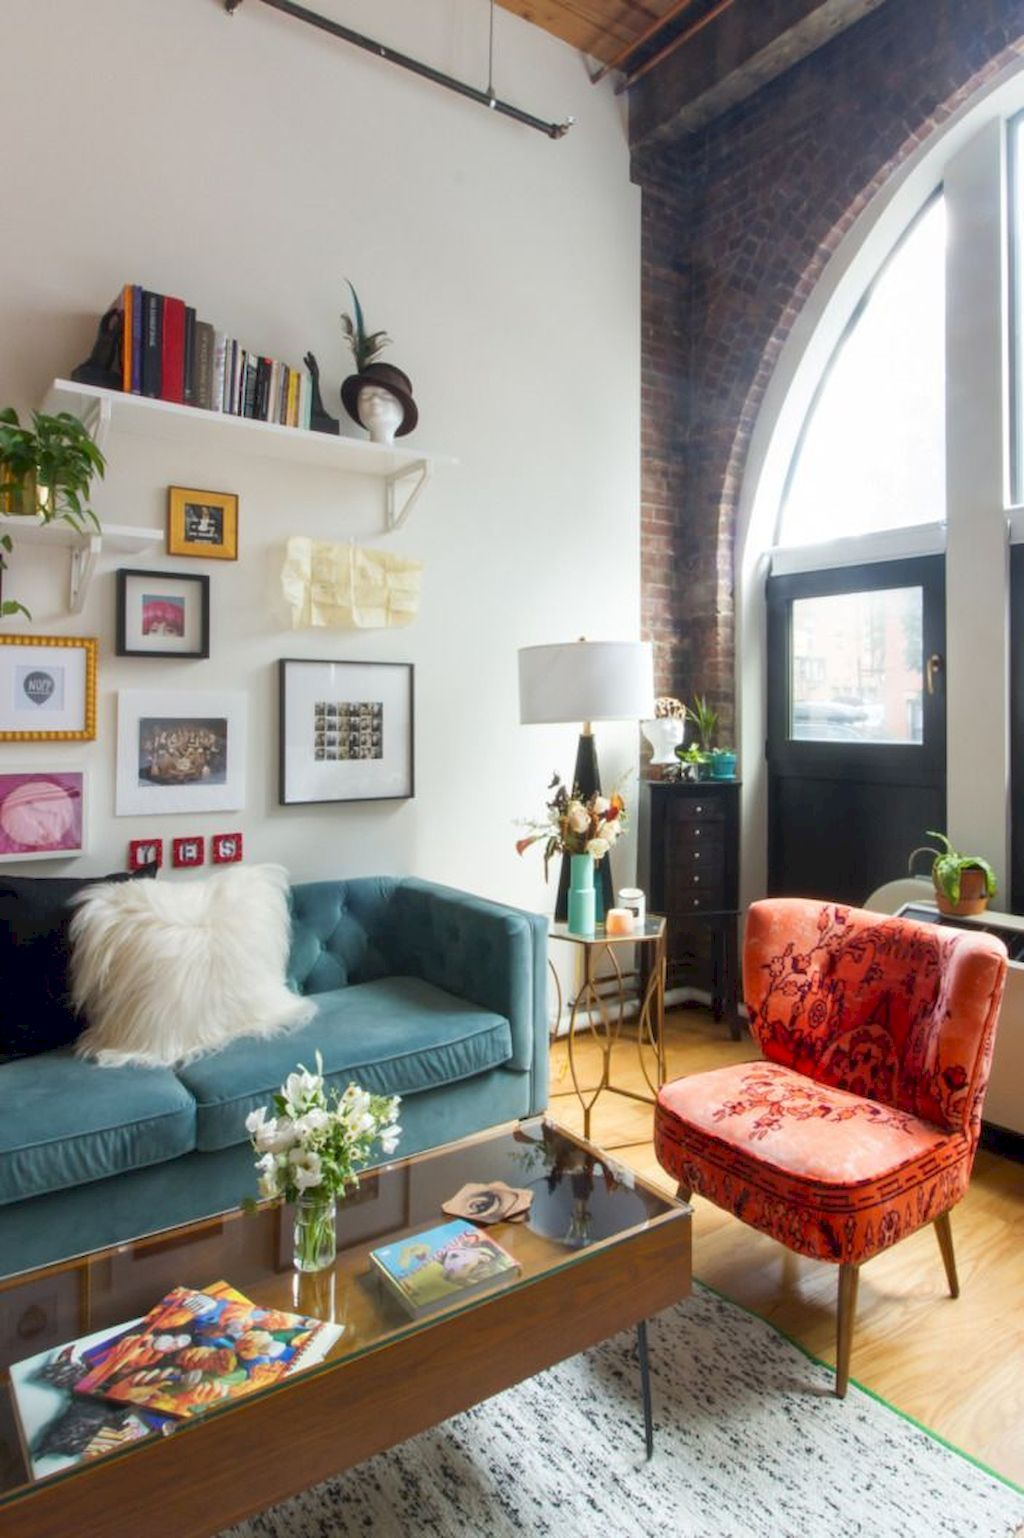 Awesome Studio Apartment Decorating Idea Love The Style Retro